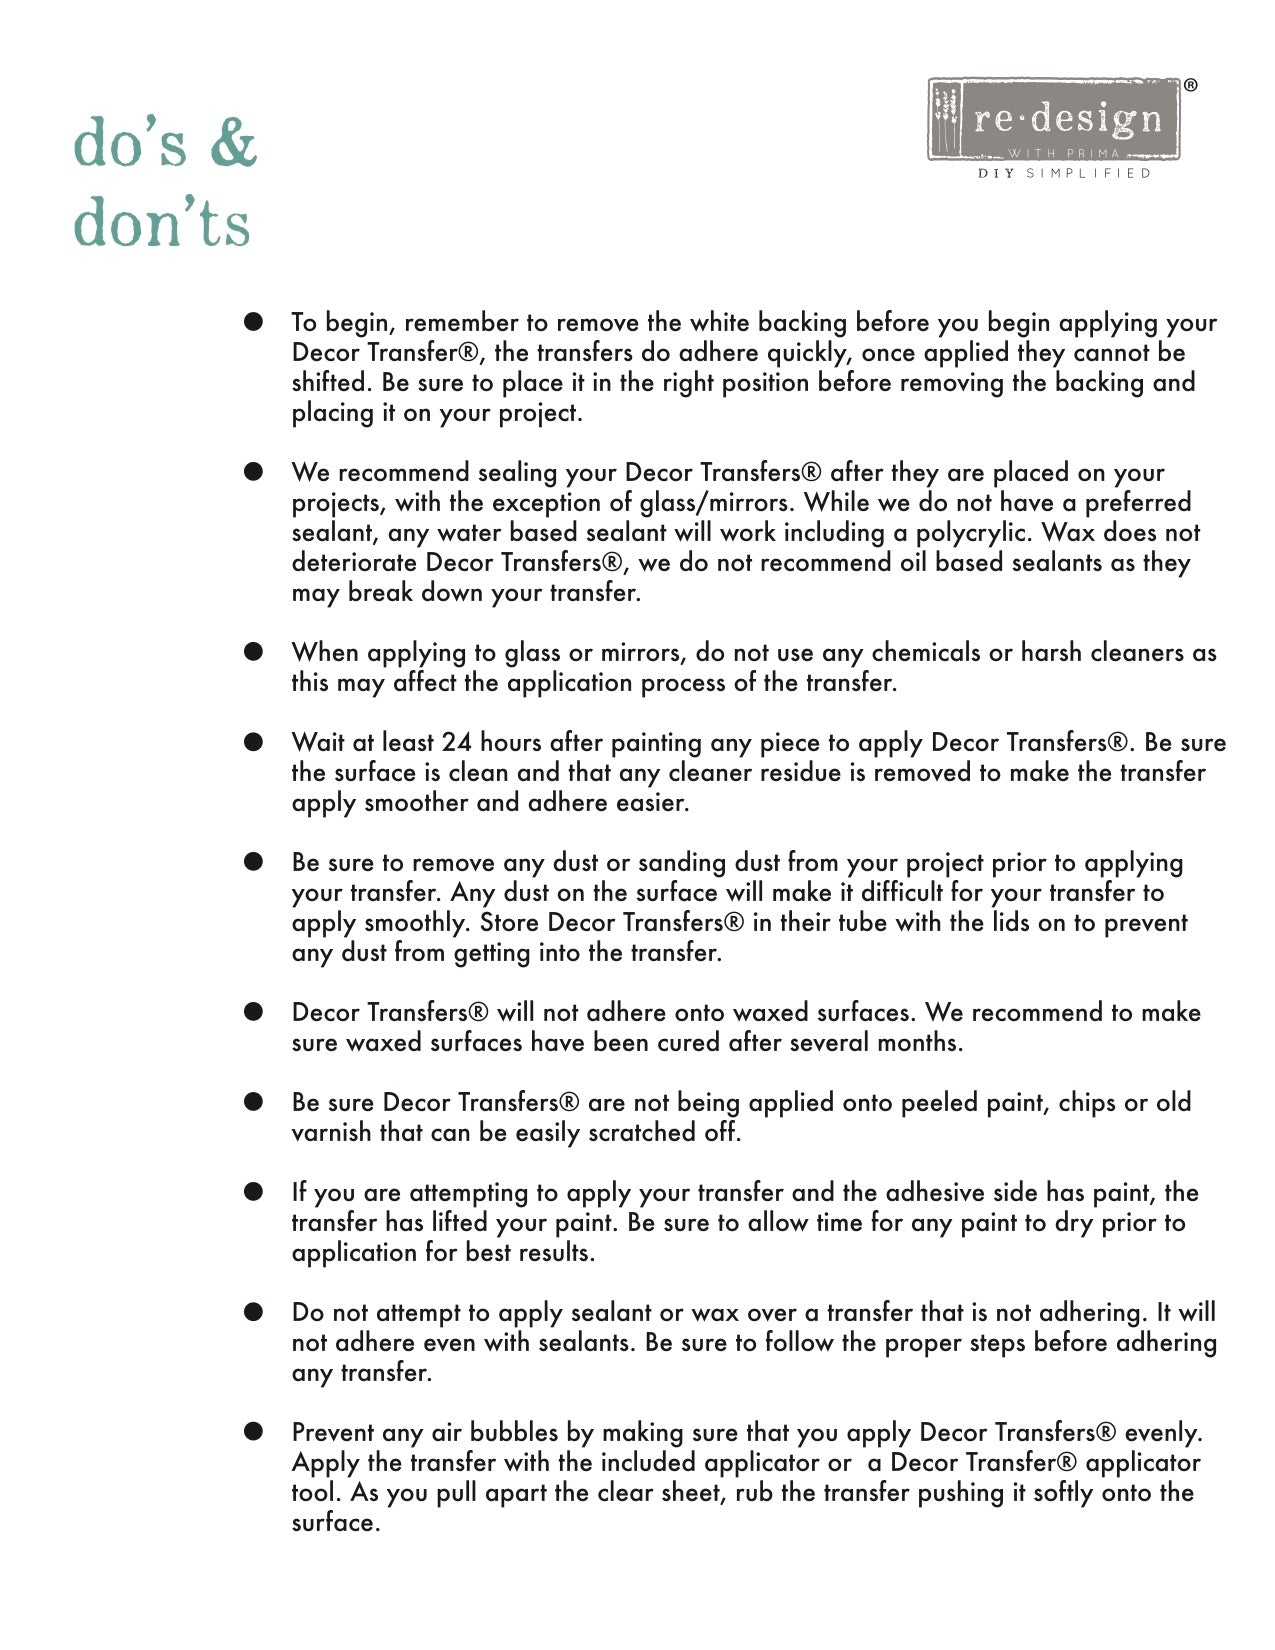 Redesign Transfer Do's and Dont's Page 1